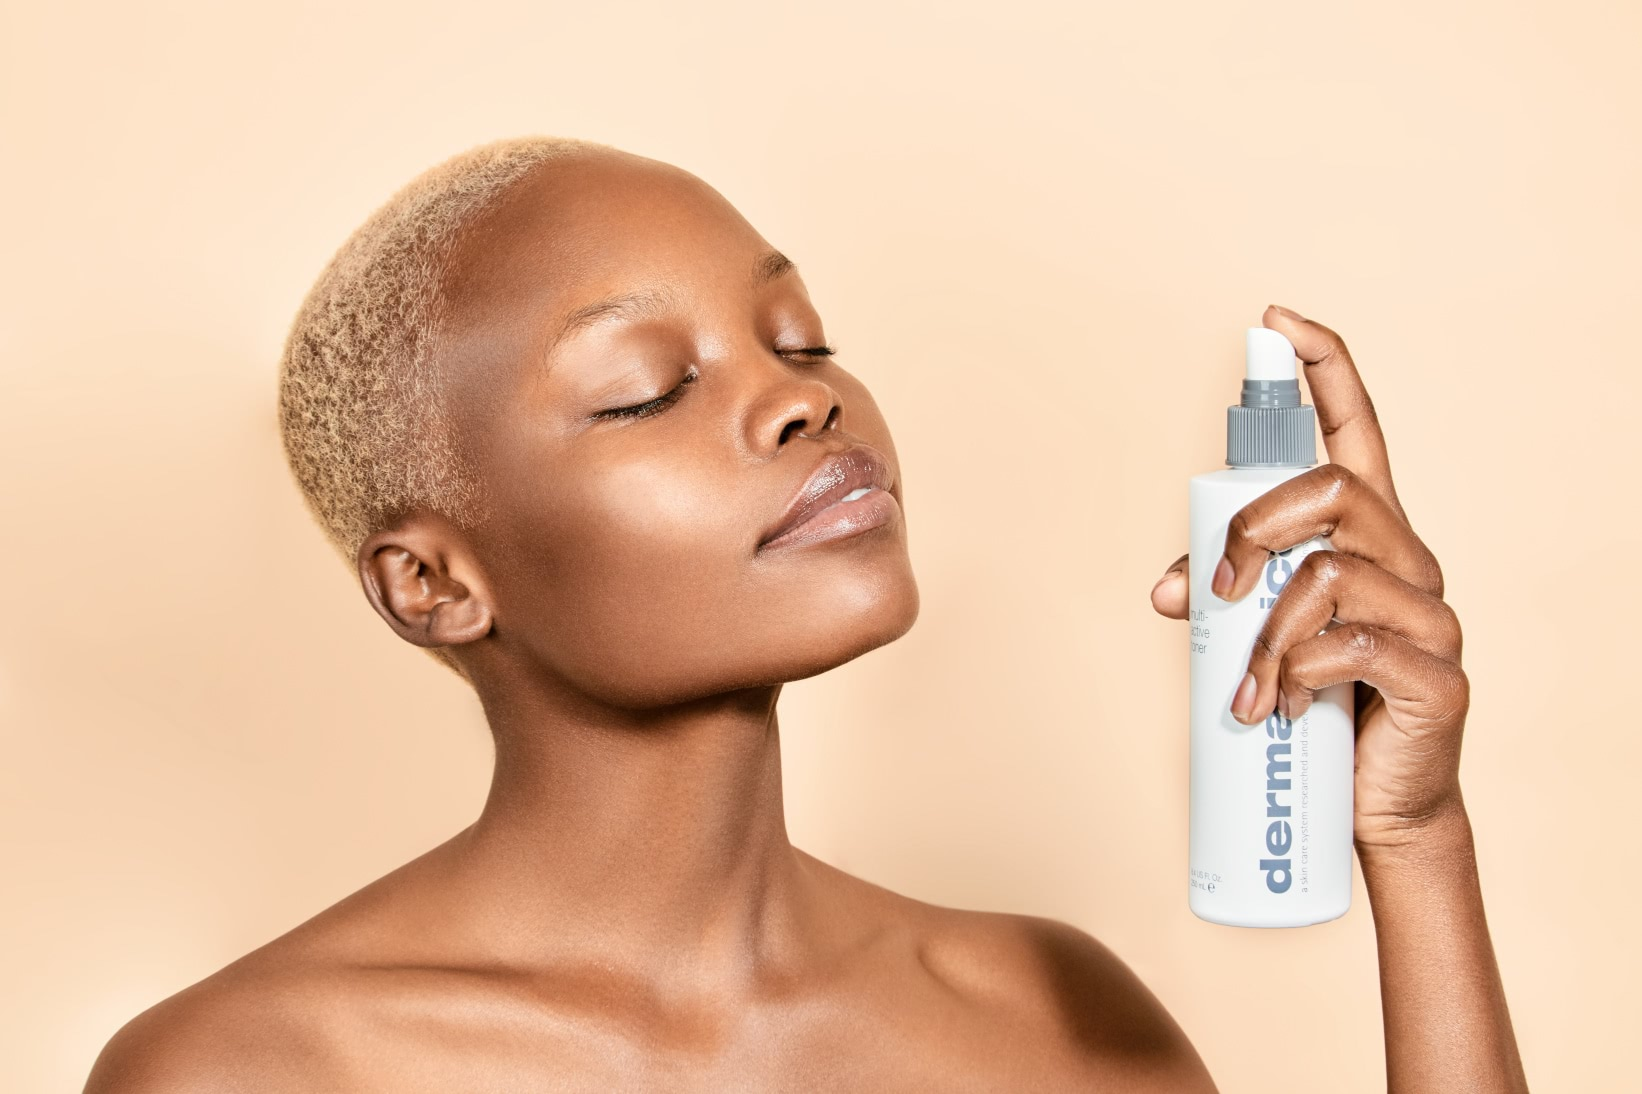 What's the Best Toner for Oily Skin?